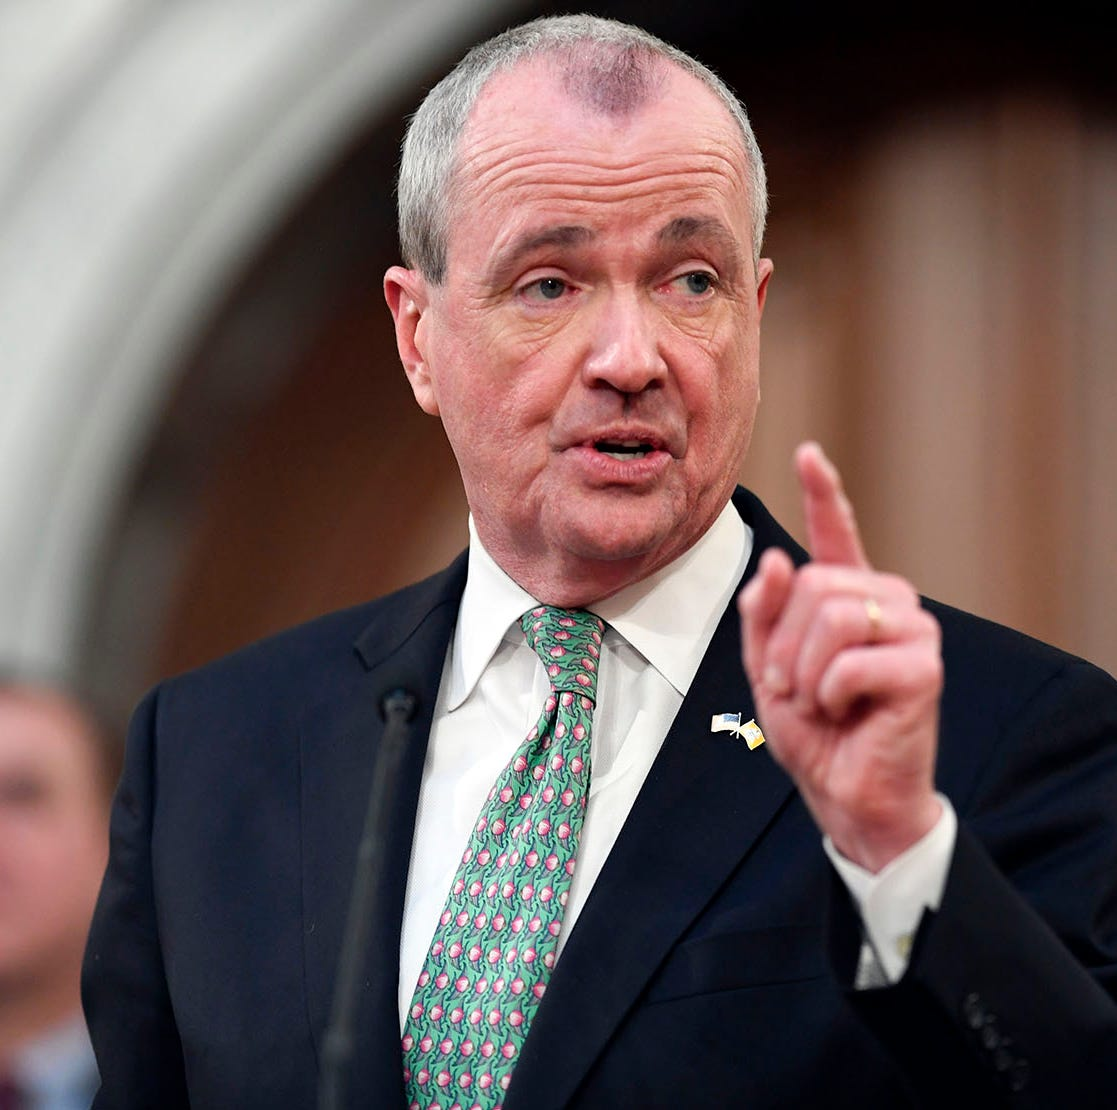 NJ gets more than expected in taxes; Murphy says that should mean property tax relief